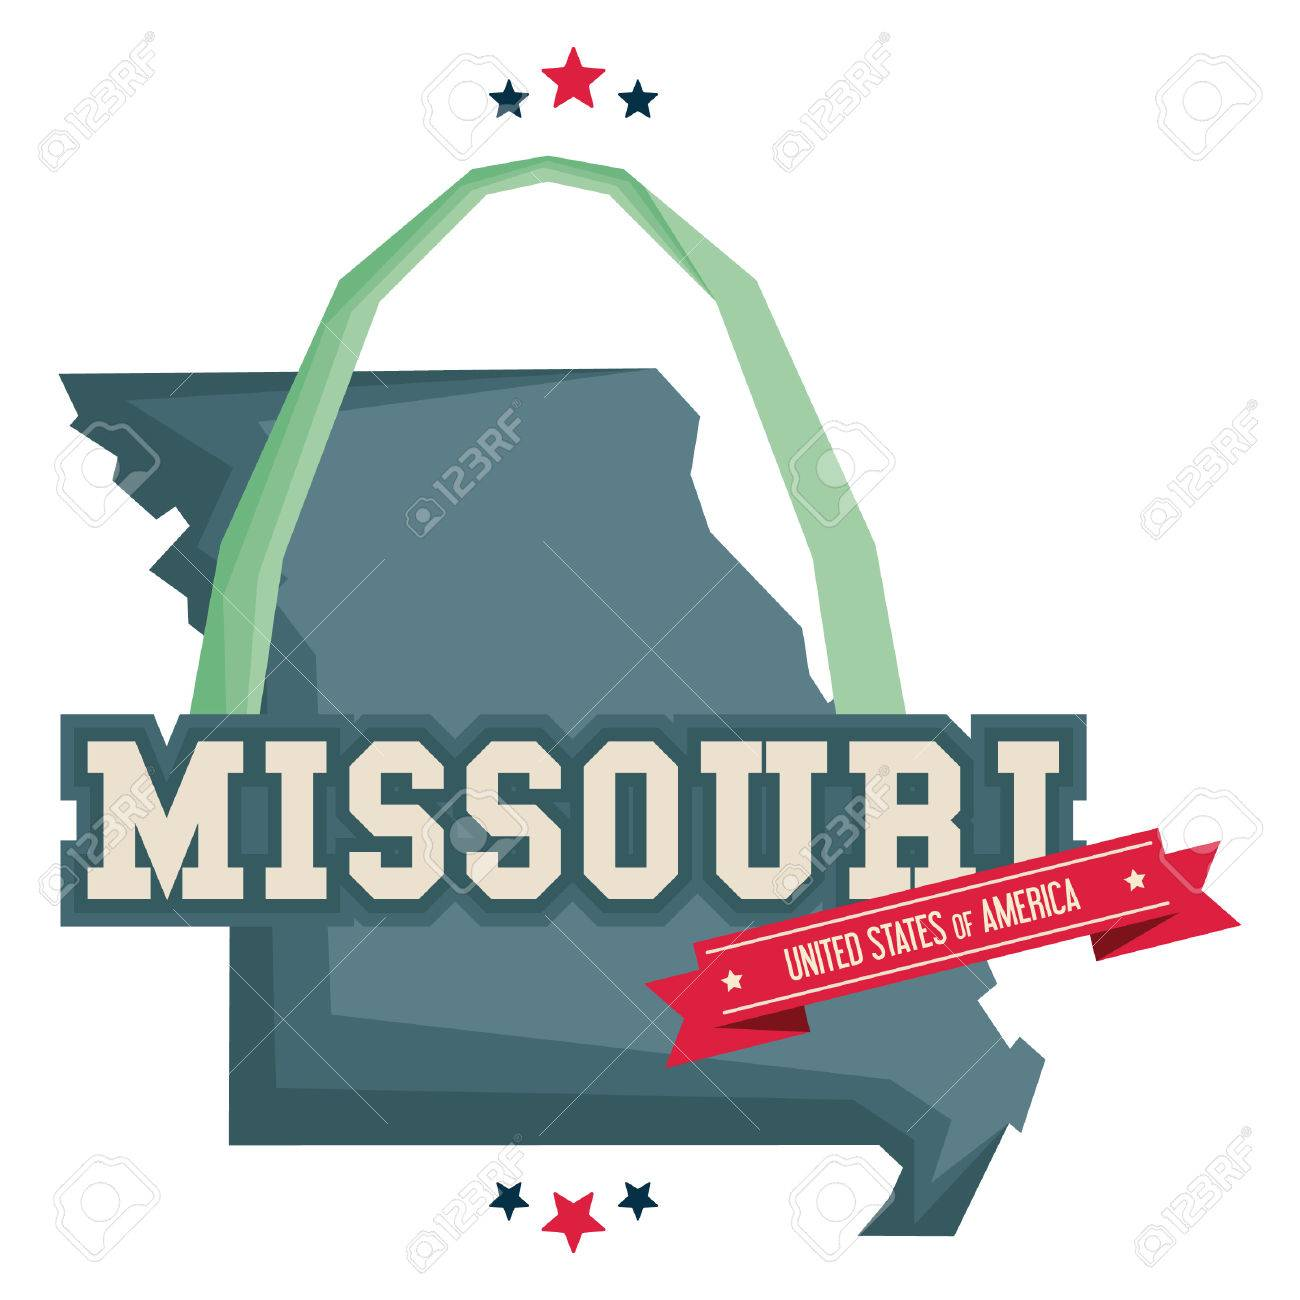 Missouri Map With St Louis Gateway Arch Royalty Free Cliparts - United states map of missouri